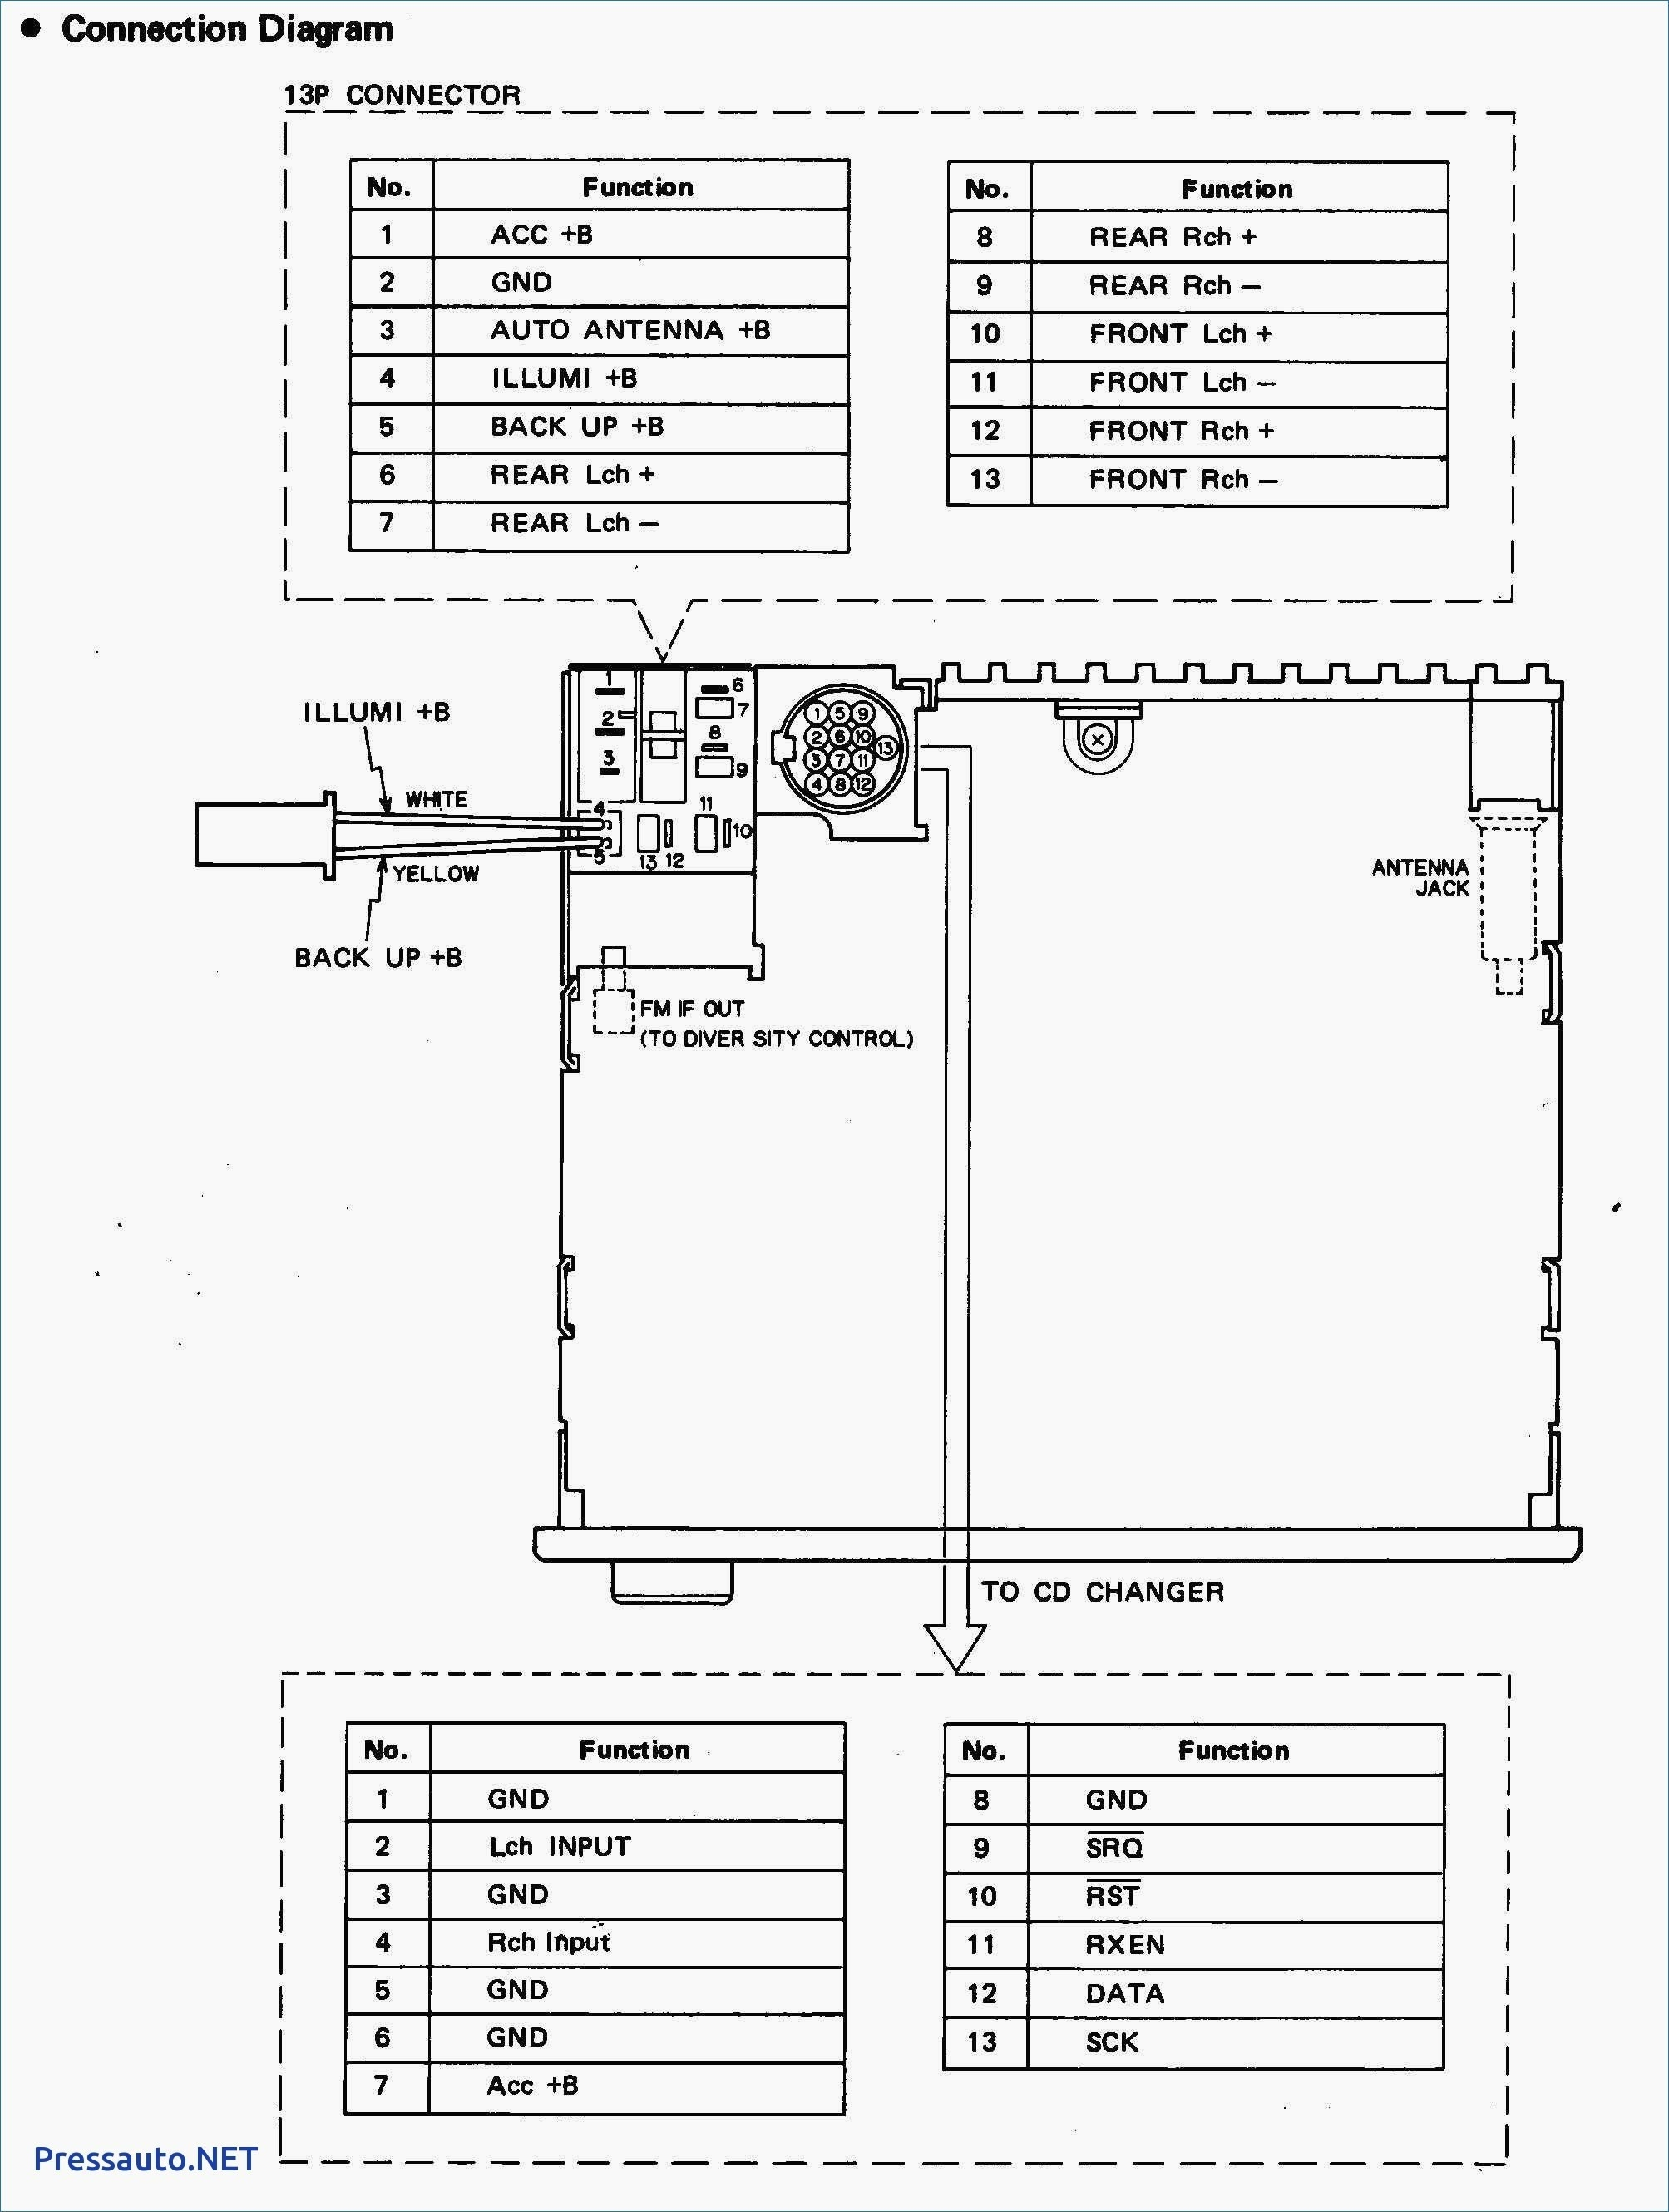 pioneer deh 150mp wiring diagram Download-Pioneer Wiring Diagram Beautiful Pioneer Deh P4700mp Wiring Diagram Best Wiring Diagram Pioneer Pioneer Wiring Diagram With Pioneer Deh P4700mp Wiring 20-k